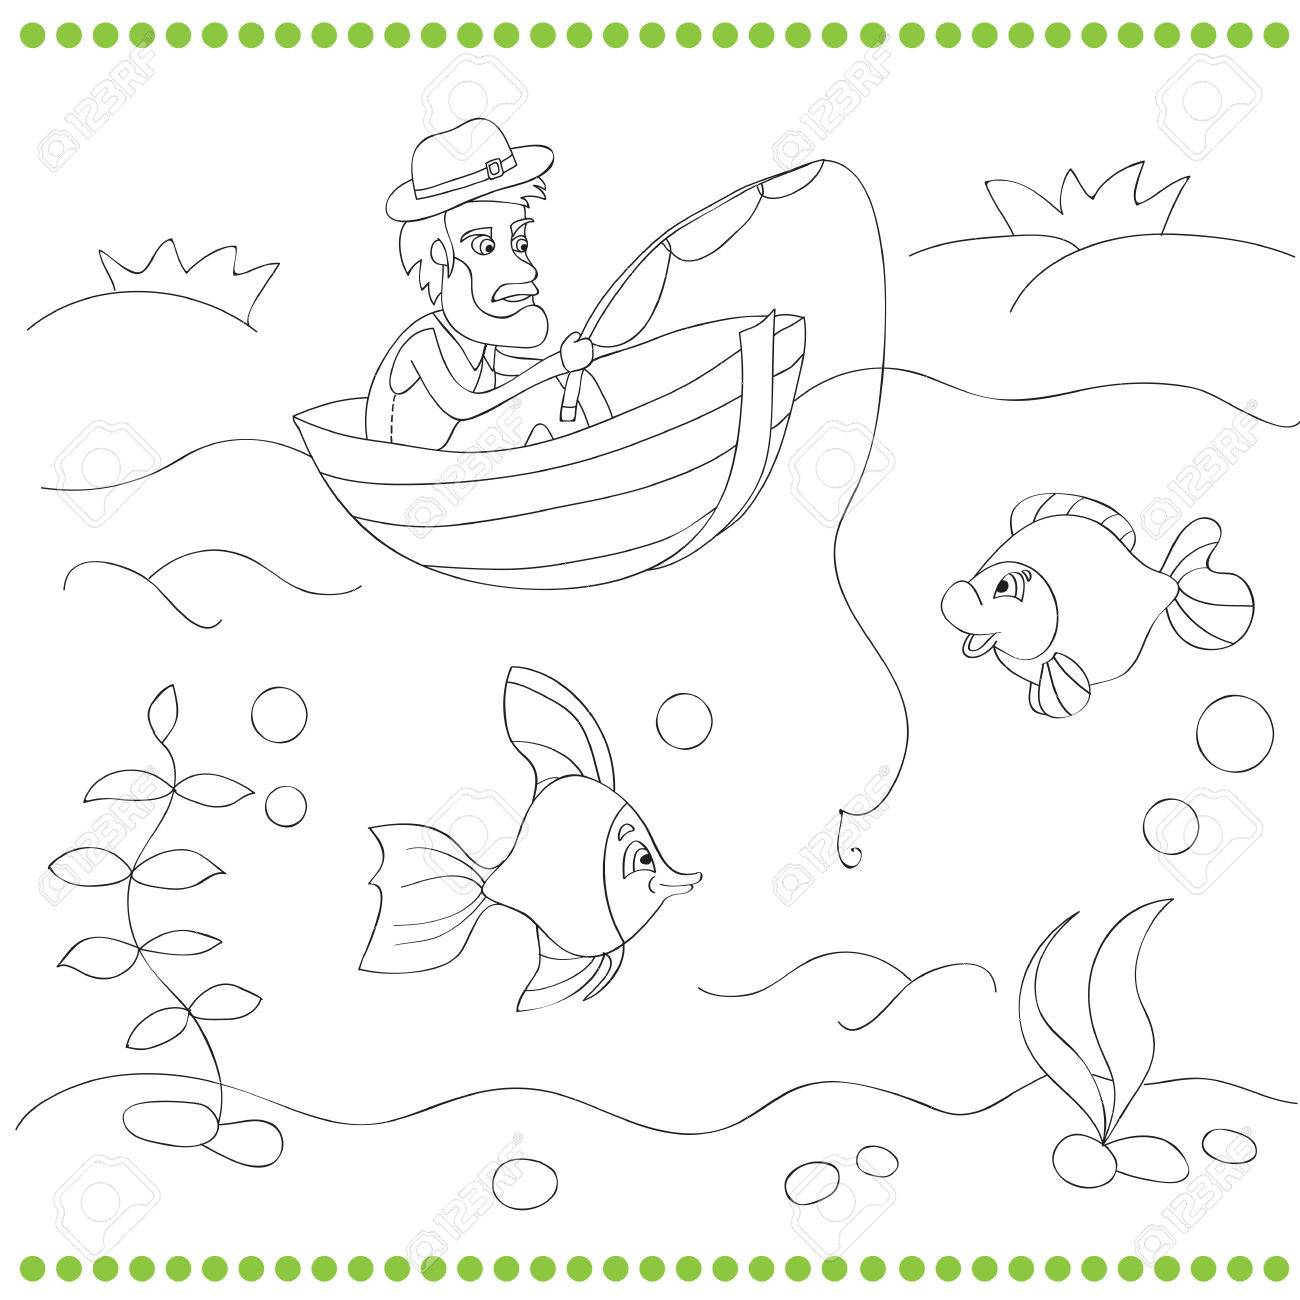 Coloring Book For Kids With Fisherman Vector Illustration Stock